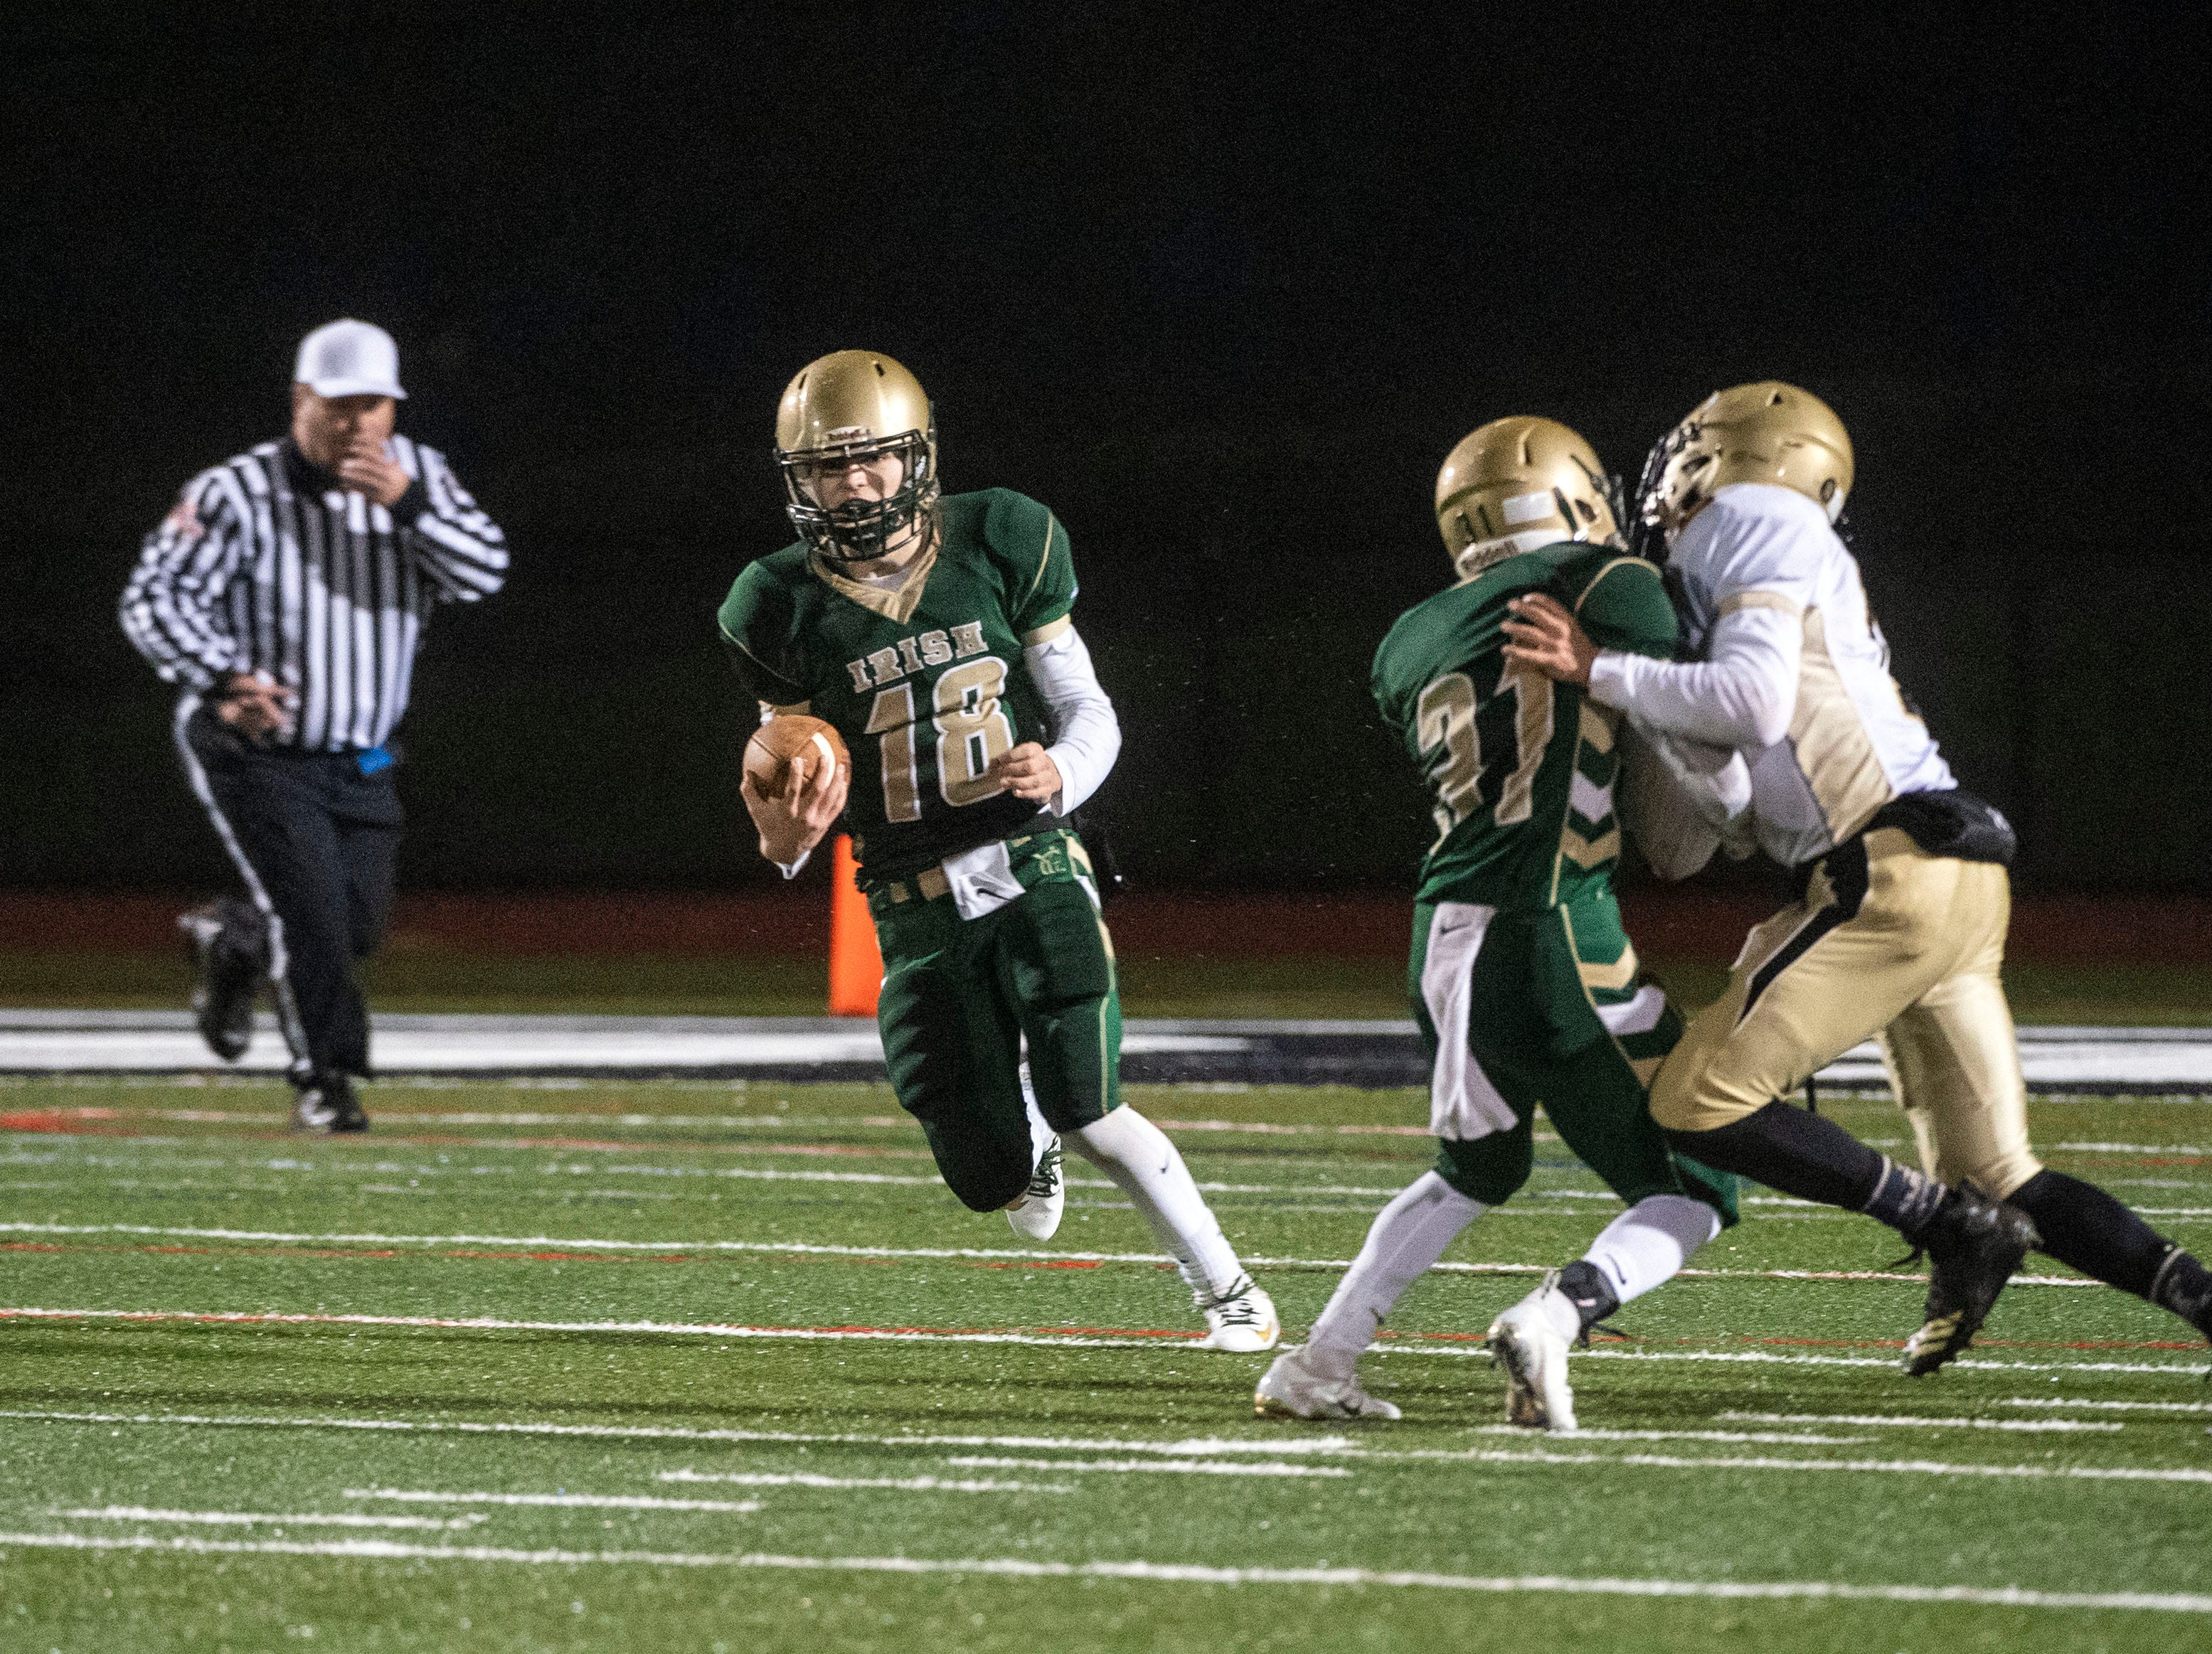 York Catholic quarterback Wesley Burns (18) runs the ball down the field during the District III 2A championship game at South Western High School on Nov. 9, 2018. The York Catholic Fighting Irish beat the Delone Catholic Squires in overtime, 28-21.